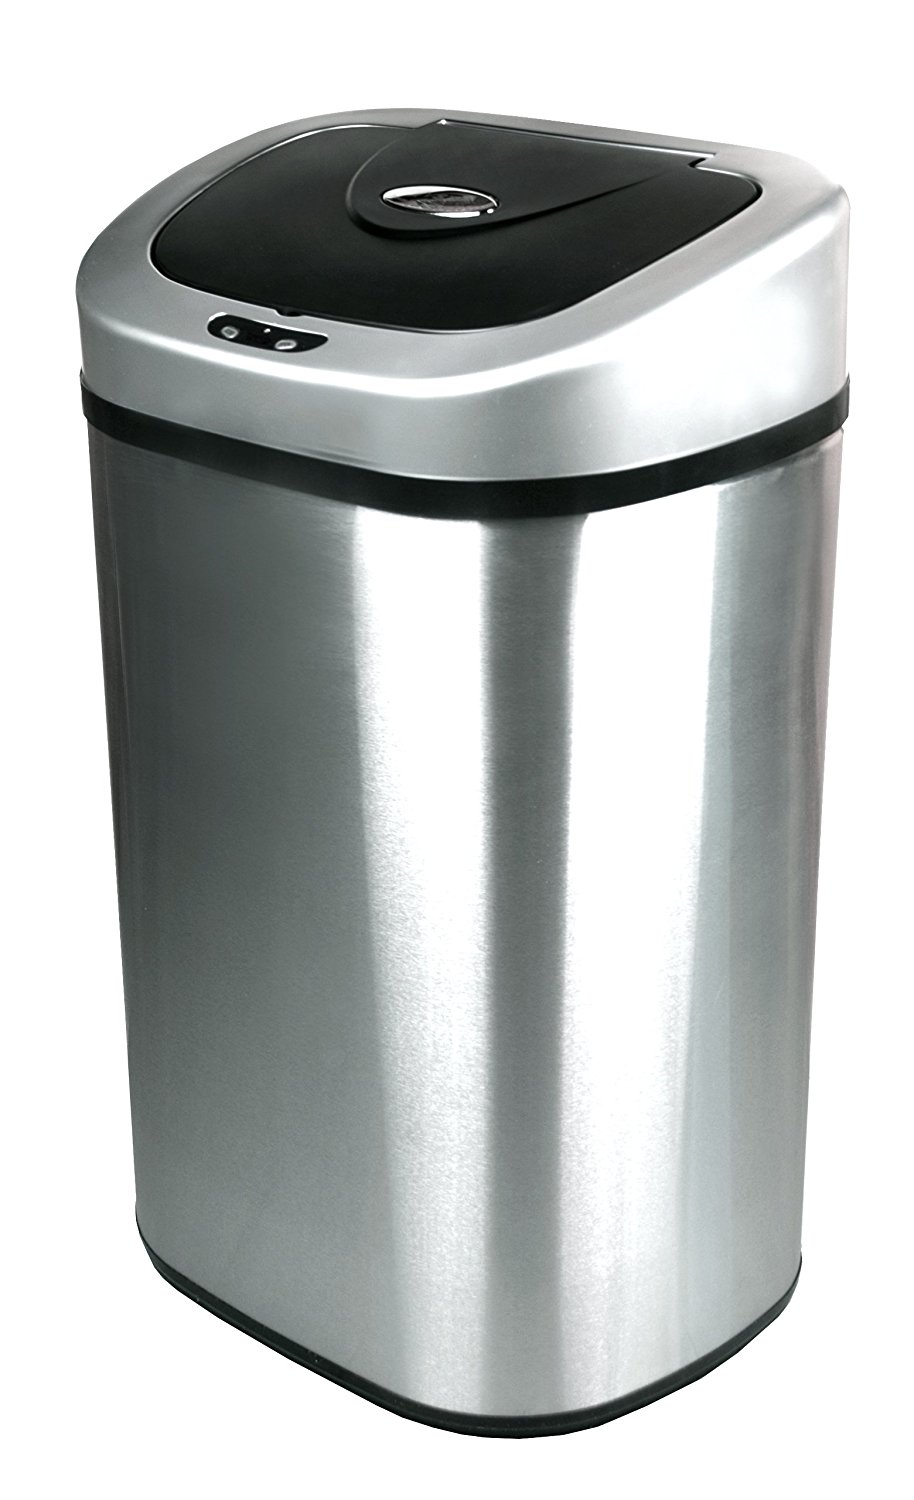 Nine Stars Touchless Stainless Steel Garbage Can with Water Resistant Infrared Motion Sensor – Available in Multiple Sizes